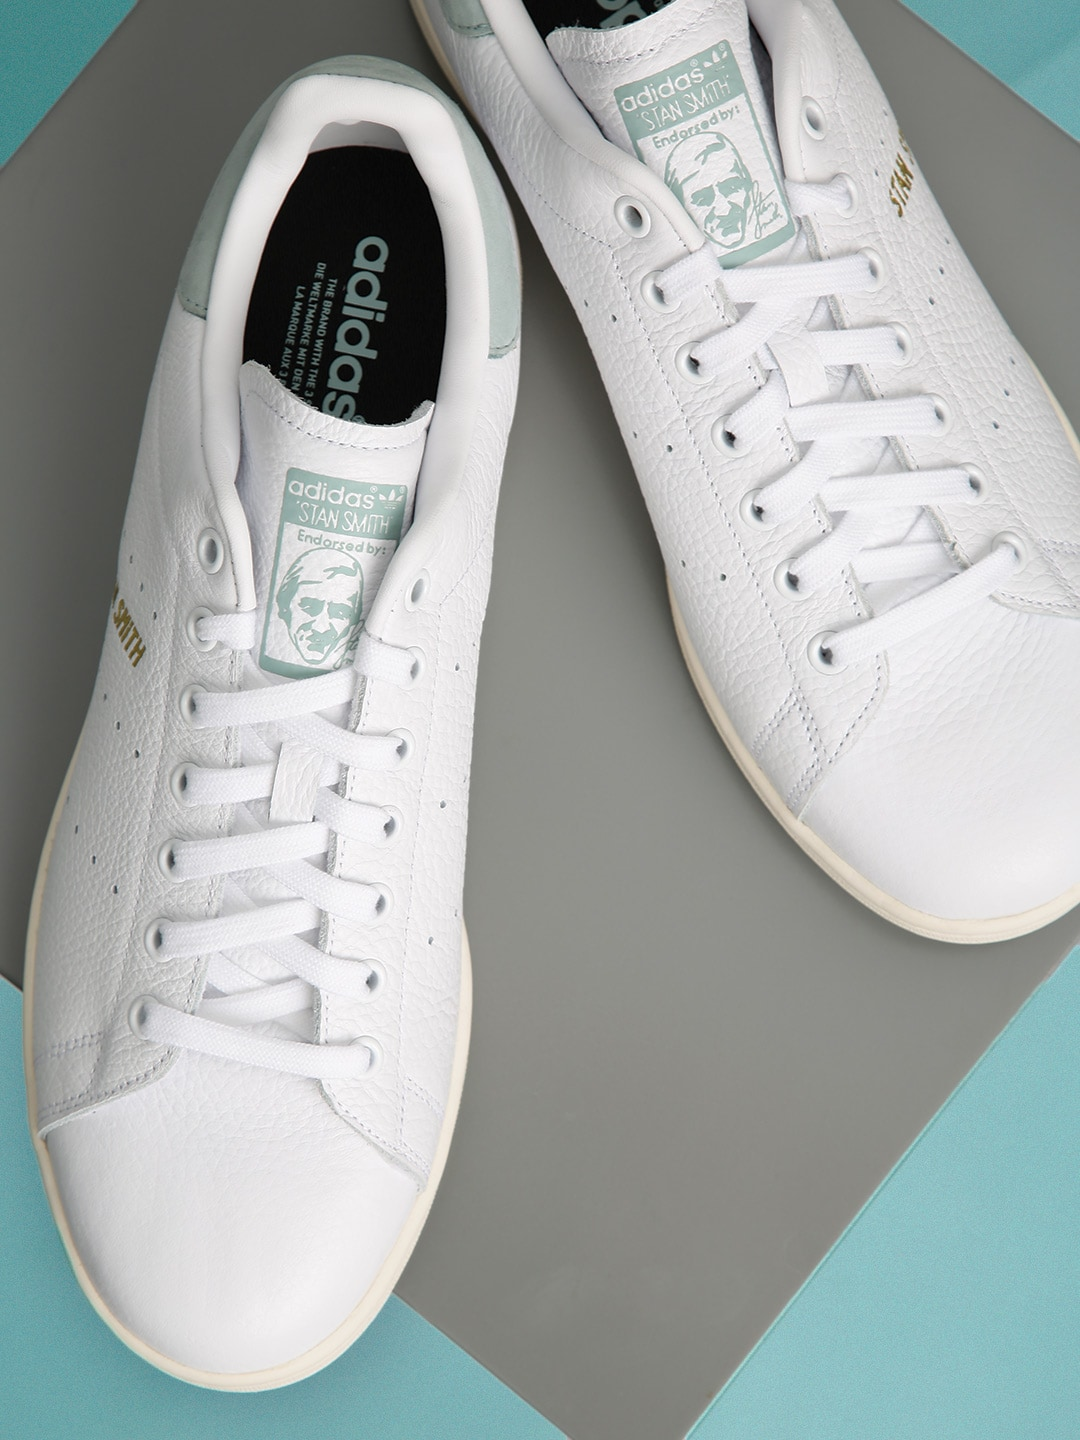 premium selection 9213f 14e73 Adidas Stan Smith Sneakers - Buy Stan Smith Shoes and Sneakers Online in  India - Myntra